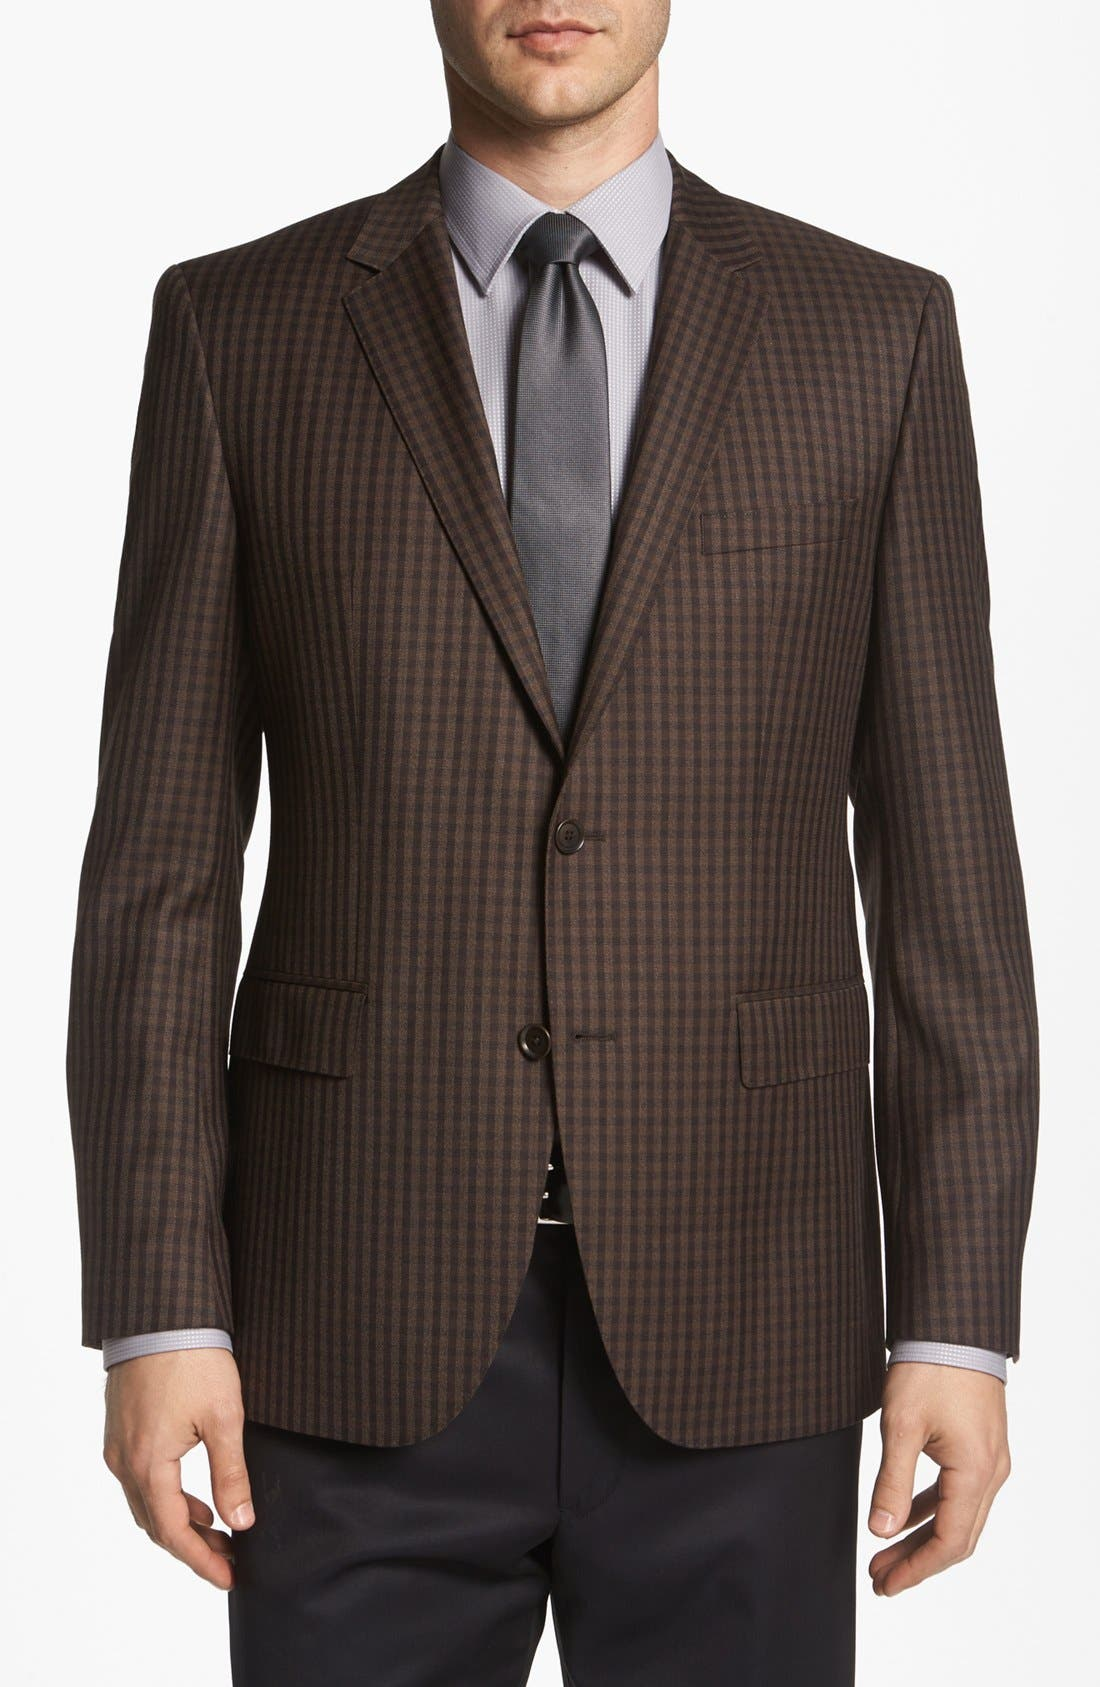 Main Image - BOSS HUGO BOSS 'The Smith' Trim Fit Check Sportcoat